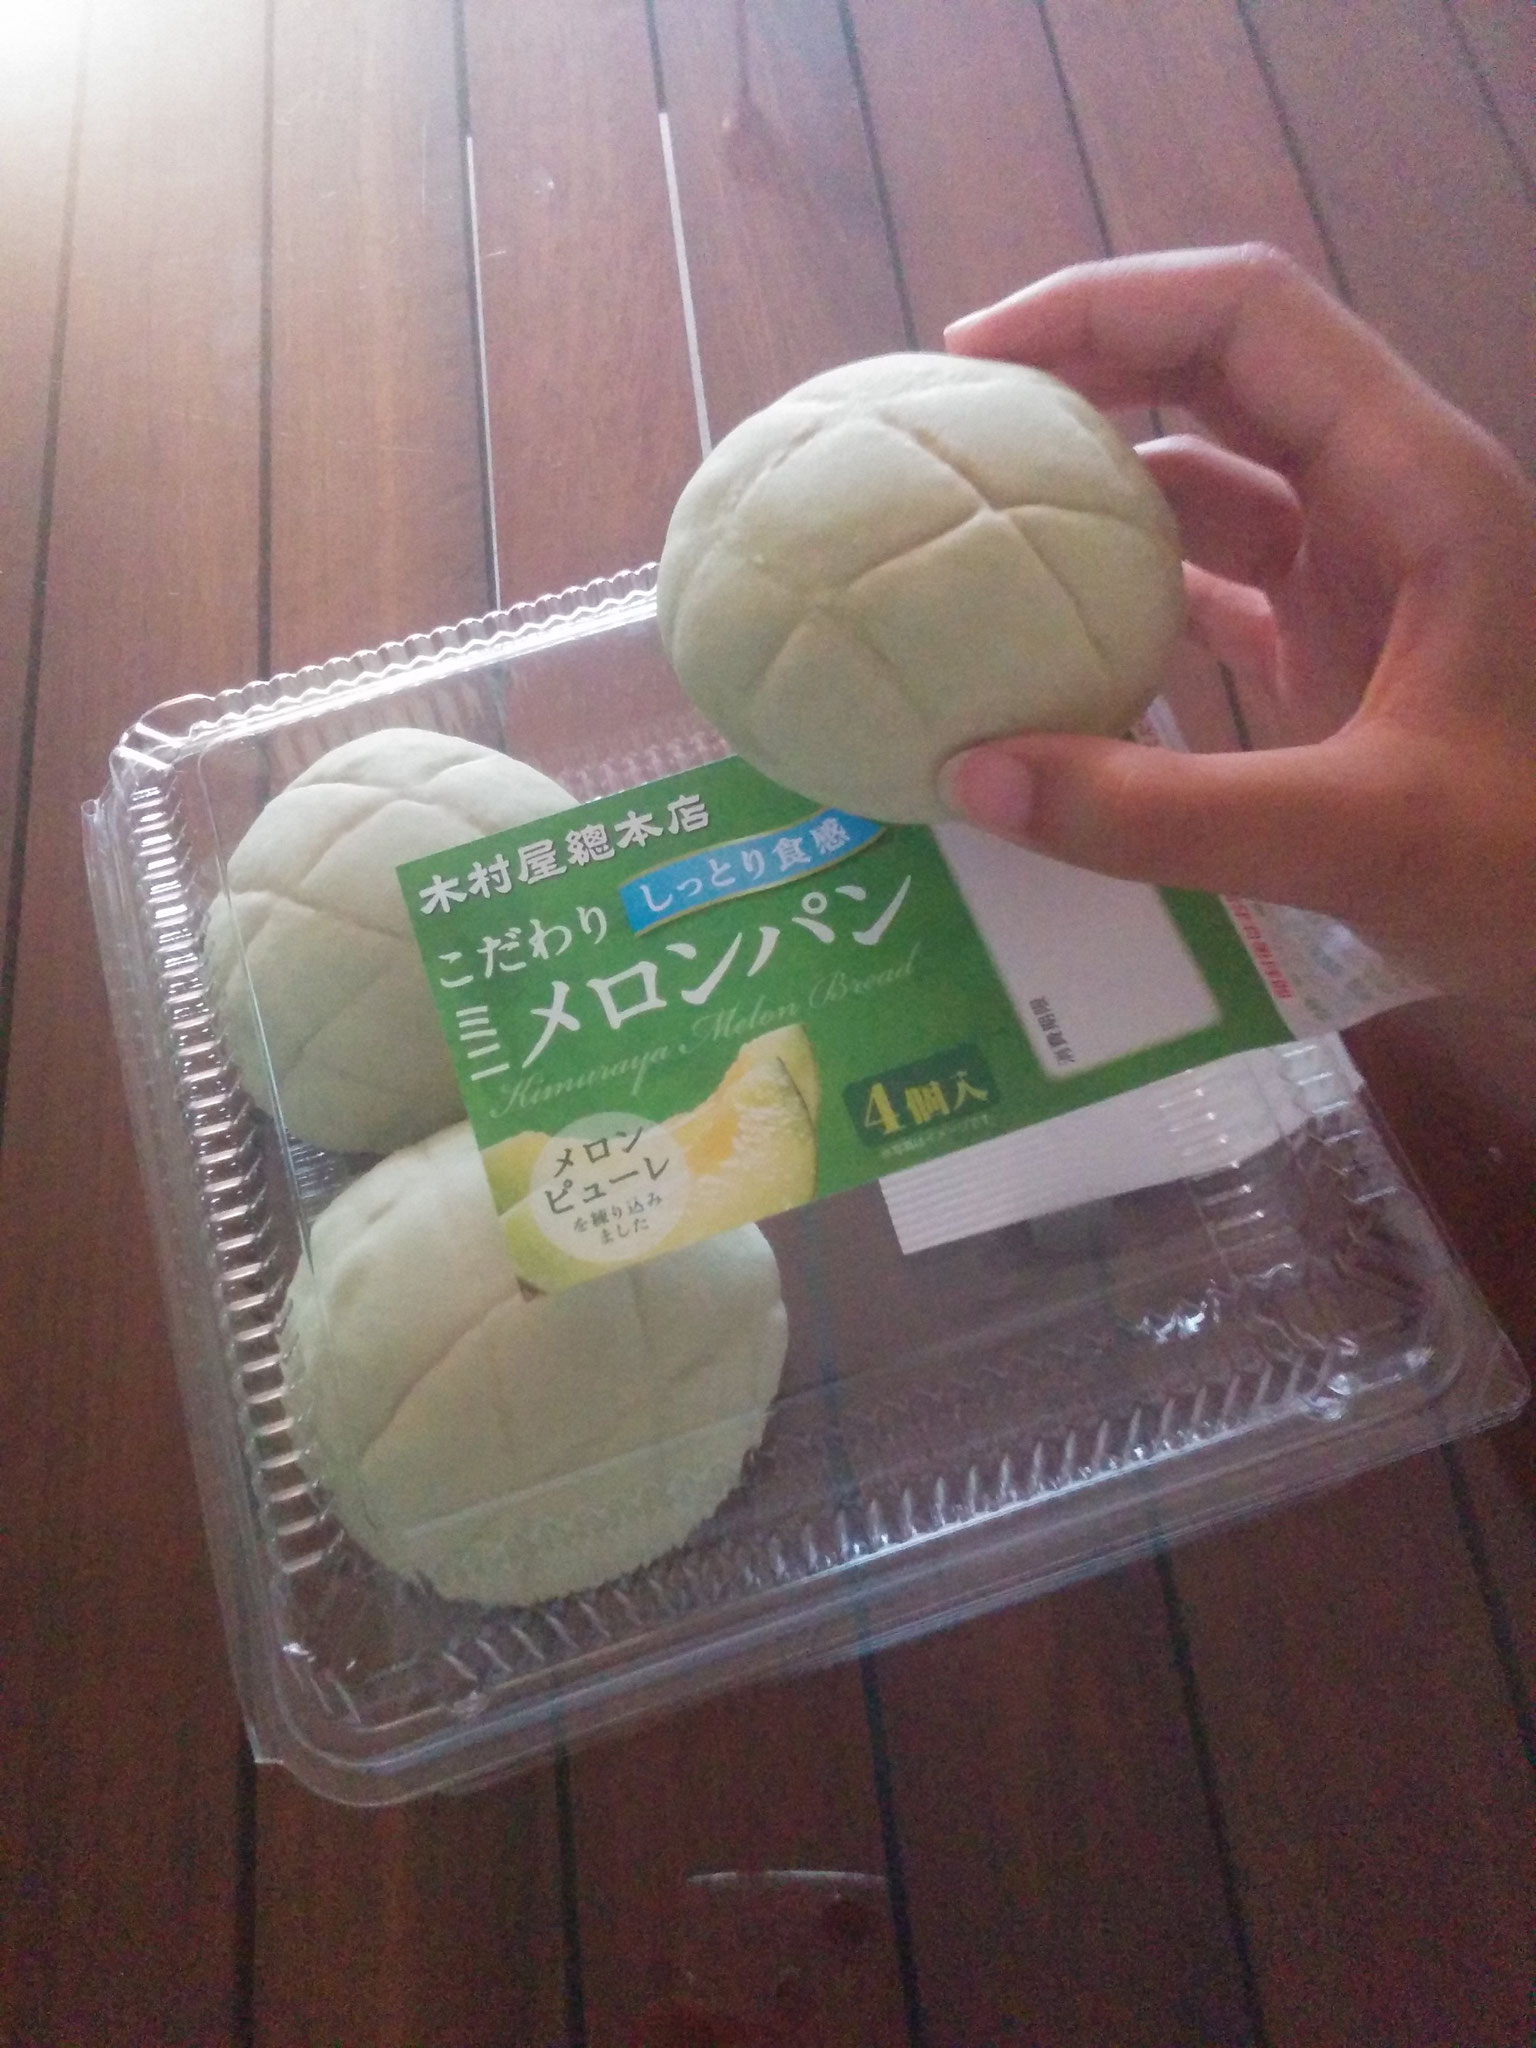 4 I bought melon pan the day I tried it first at school